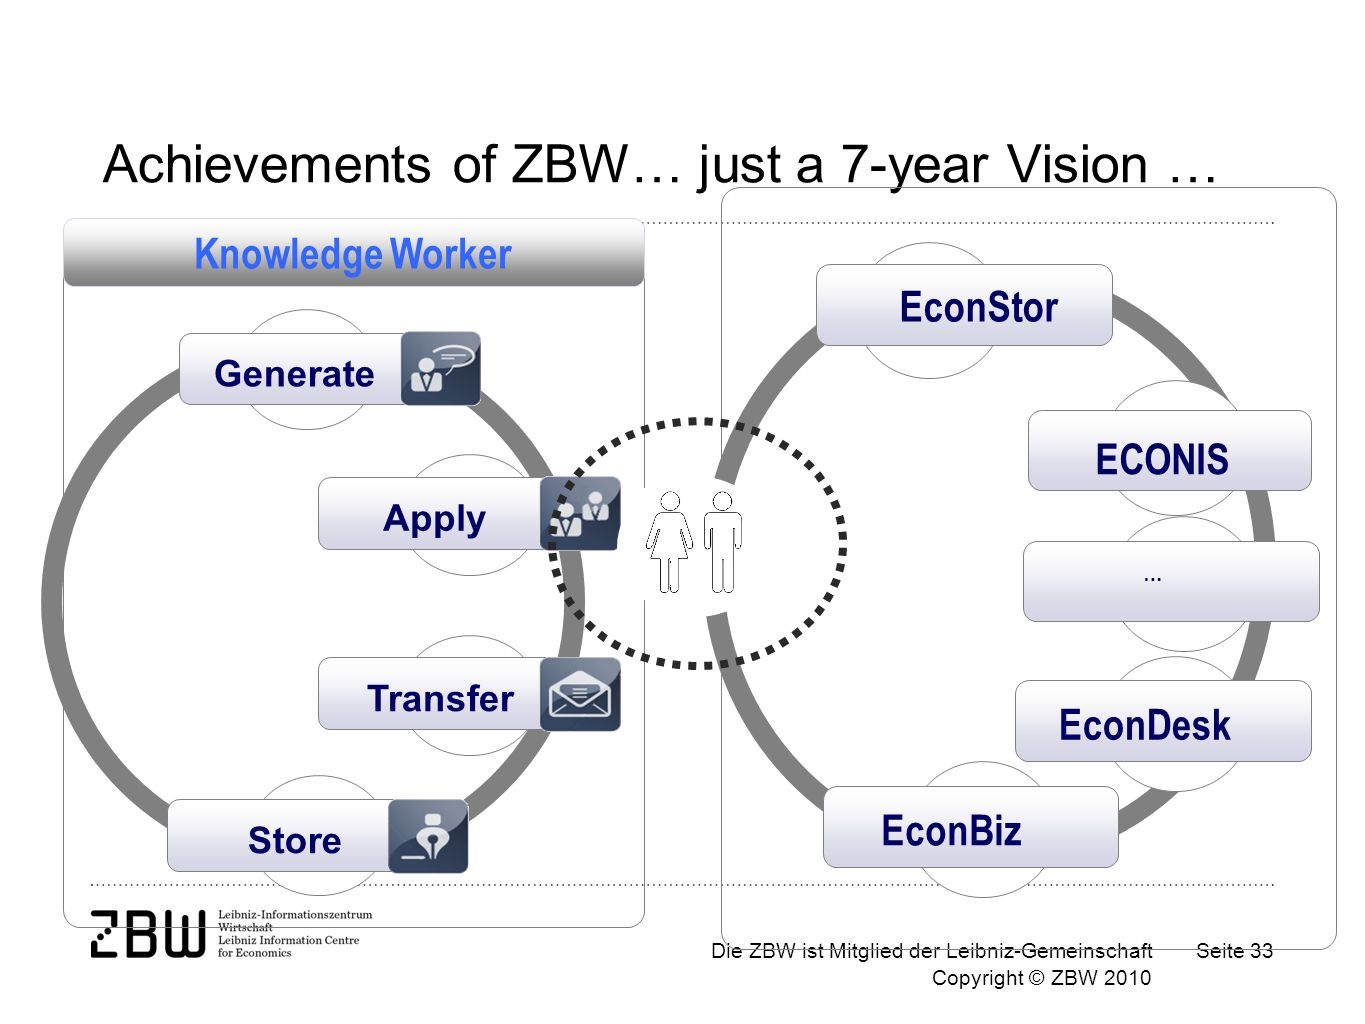 Die ZBW ist Mitglied der Leibniz-Gemeinschaft Copyright © ZBW 2010 Seite 33 Store Apply Generate Transfer Knowledge Worker Achievements of ZBW… just a 7-year Vision … ECONIS EconStor EconBiz EconDesk …